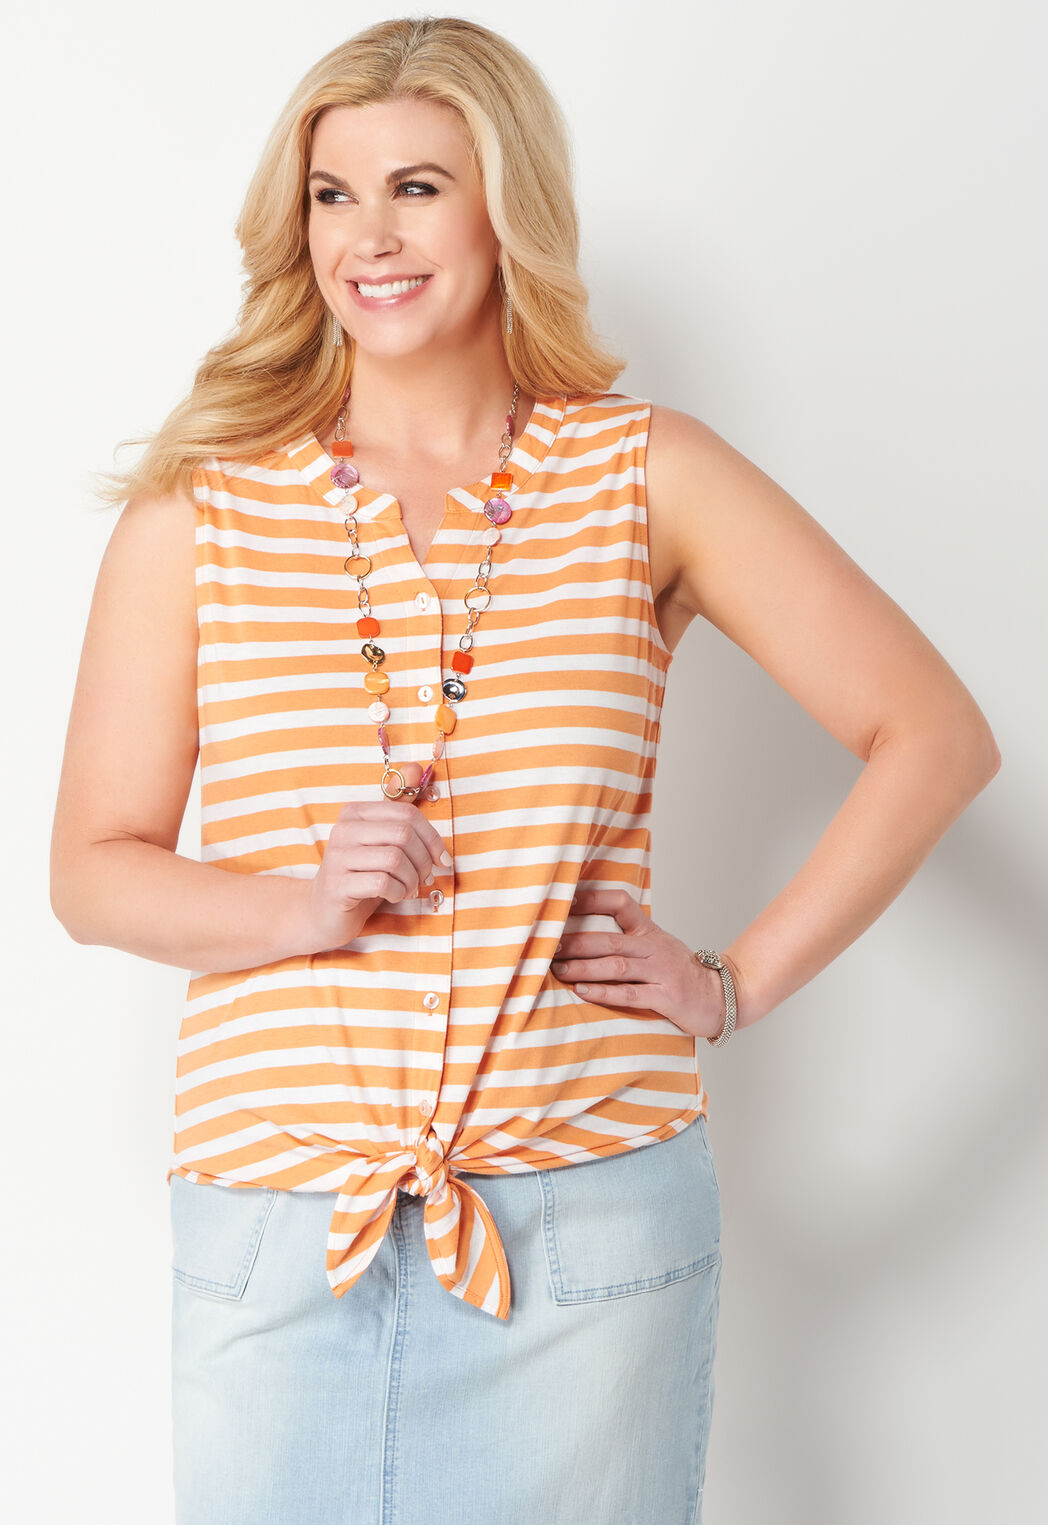 39ee3cf375f ... Tie-Front Striped Knit Plus Size Top. add to wish list · add to wish  list